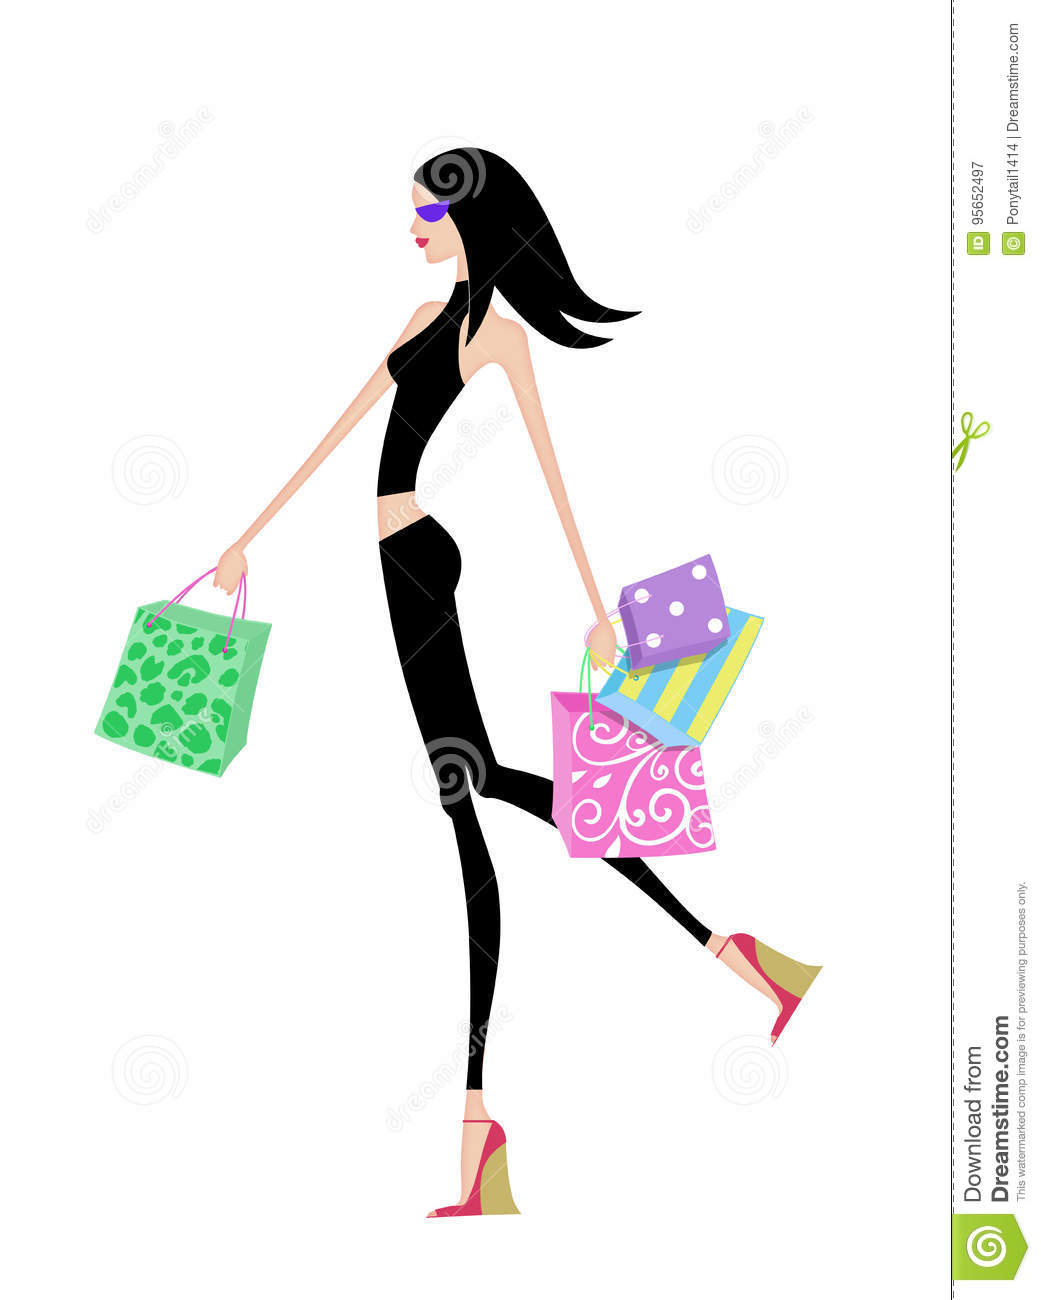 841c607273e8 Chic Girl Walking With Shopping Bags Stock Illustration ...